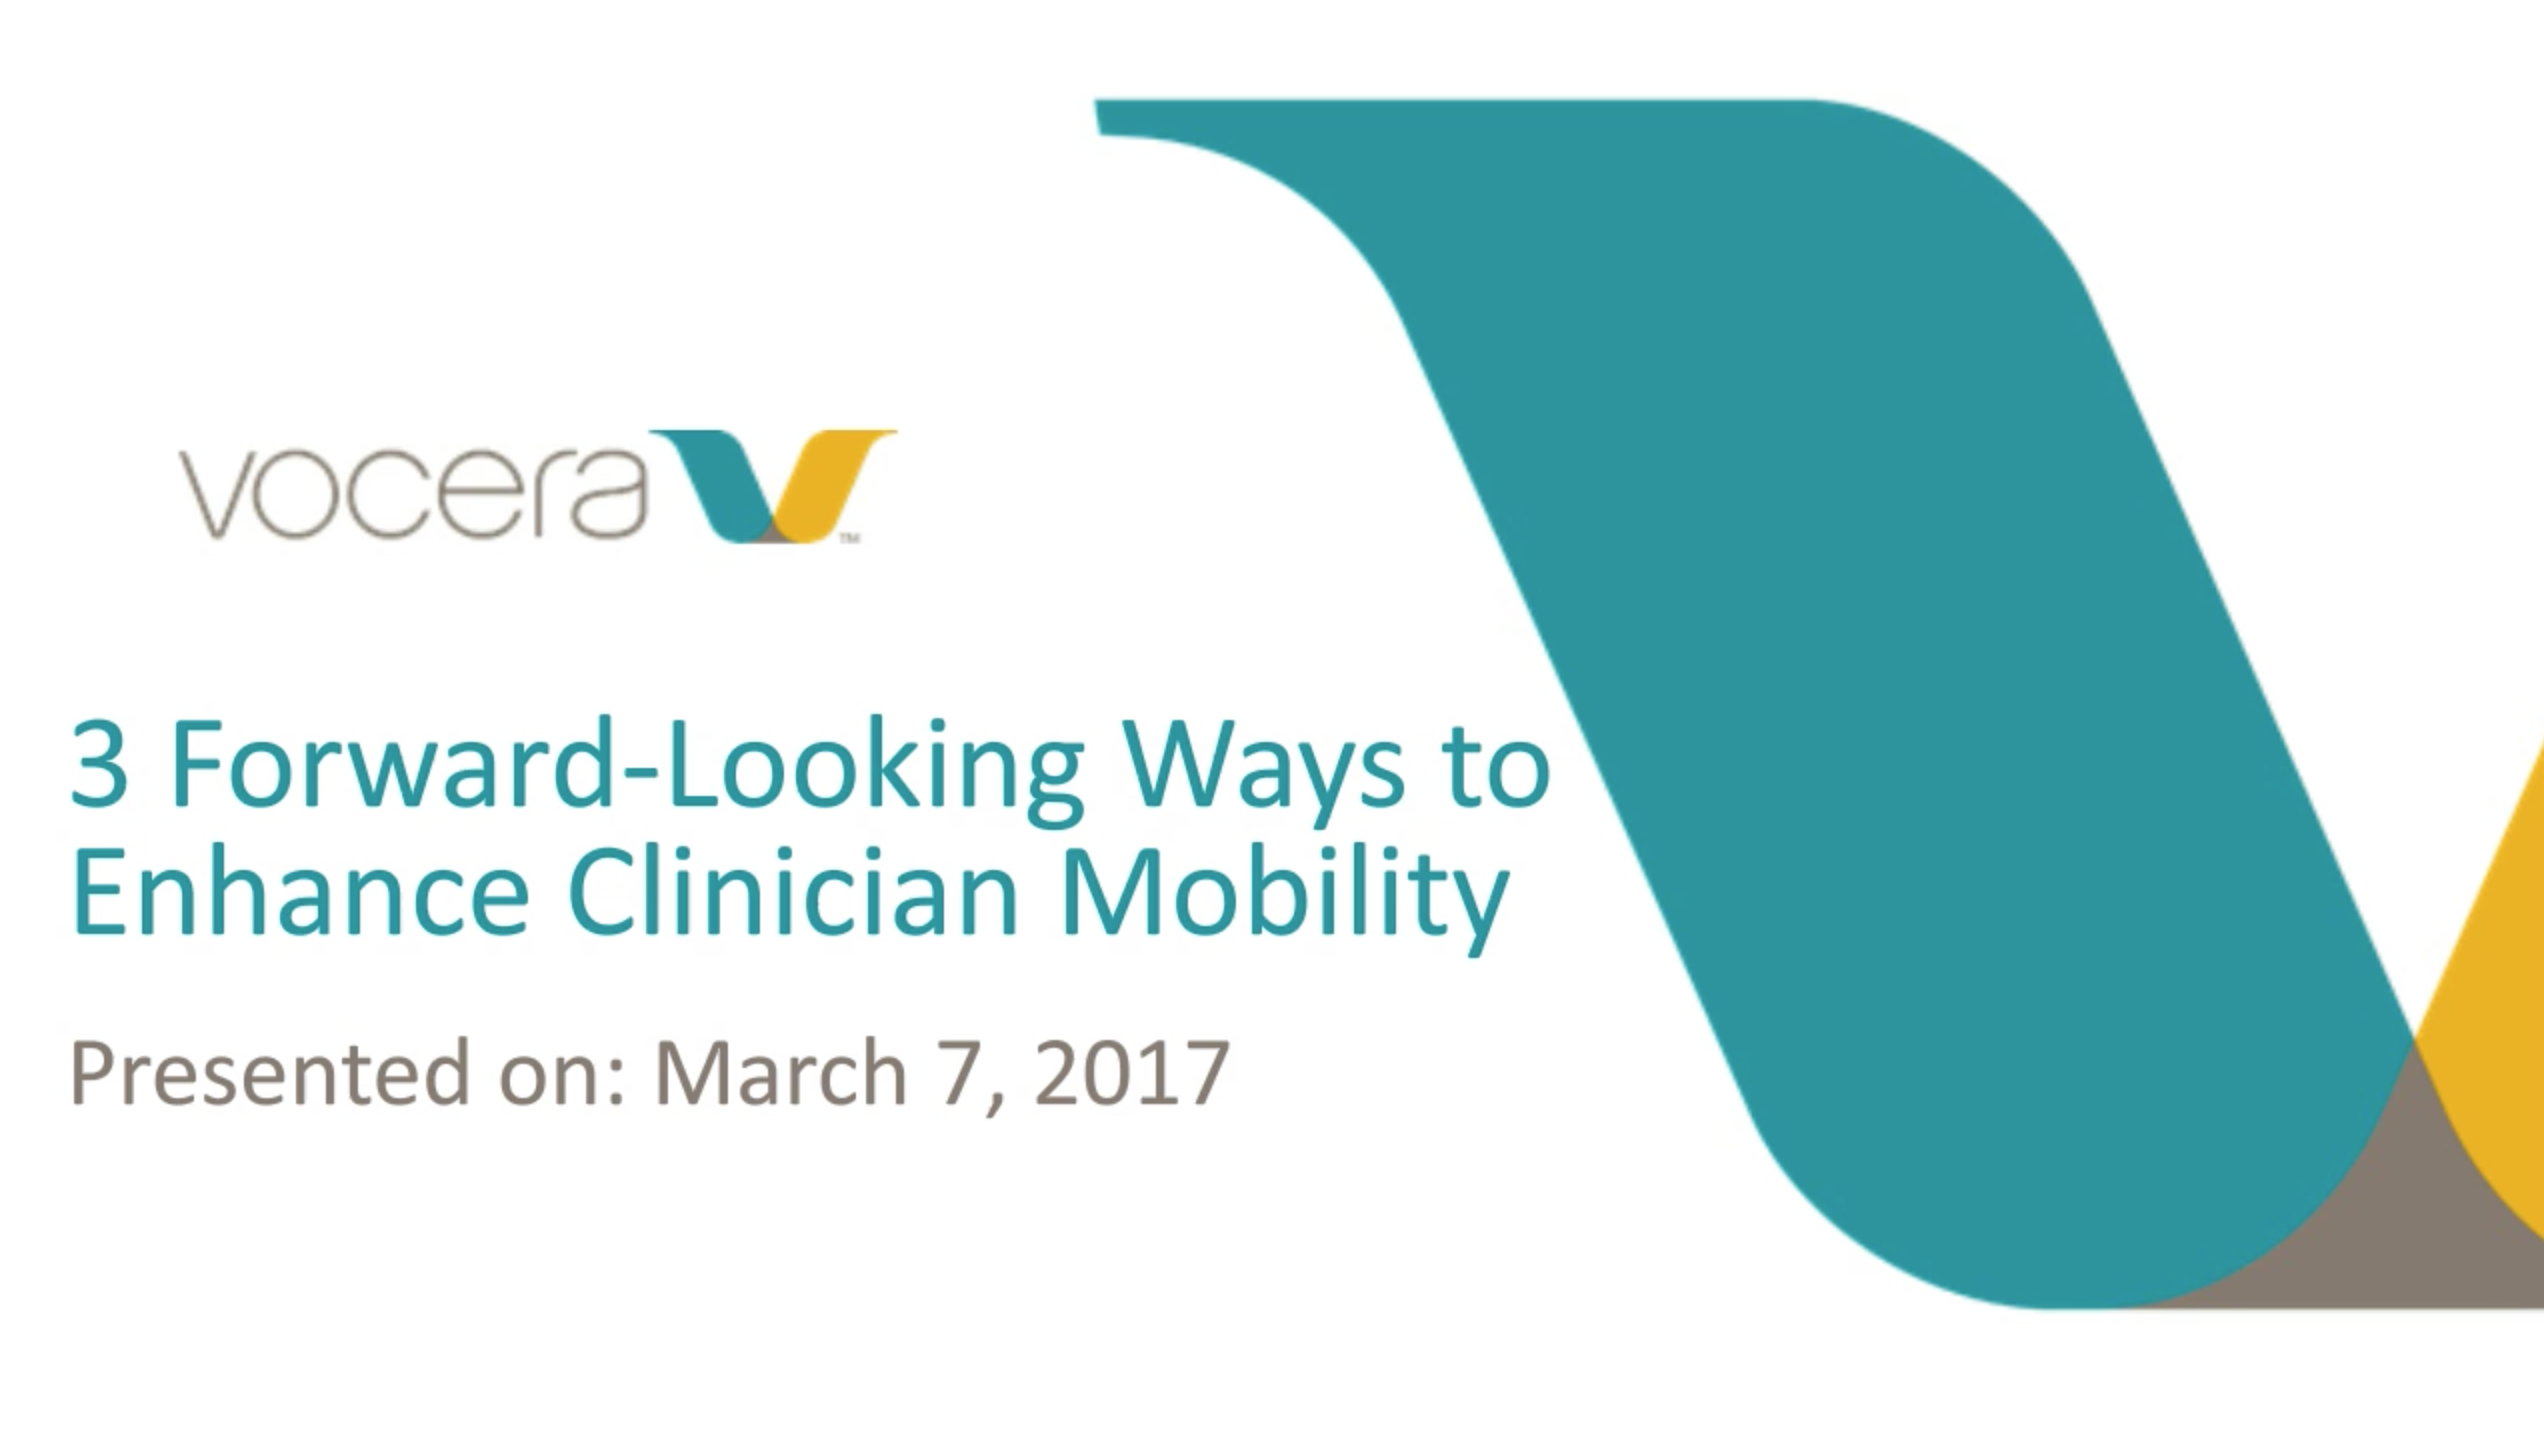 Three Forward-Looking Ways to Enhance Clinician Mobility